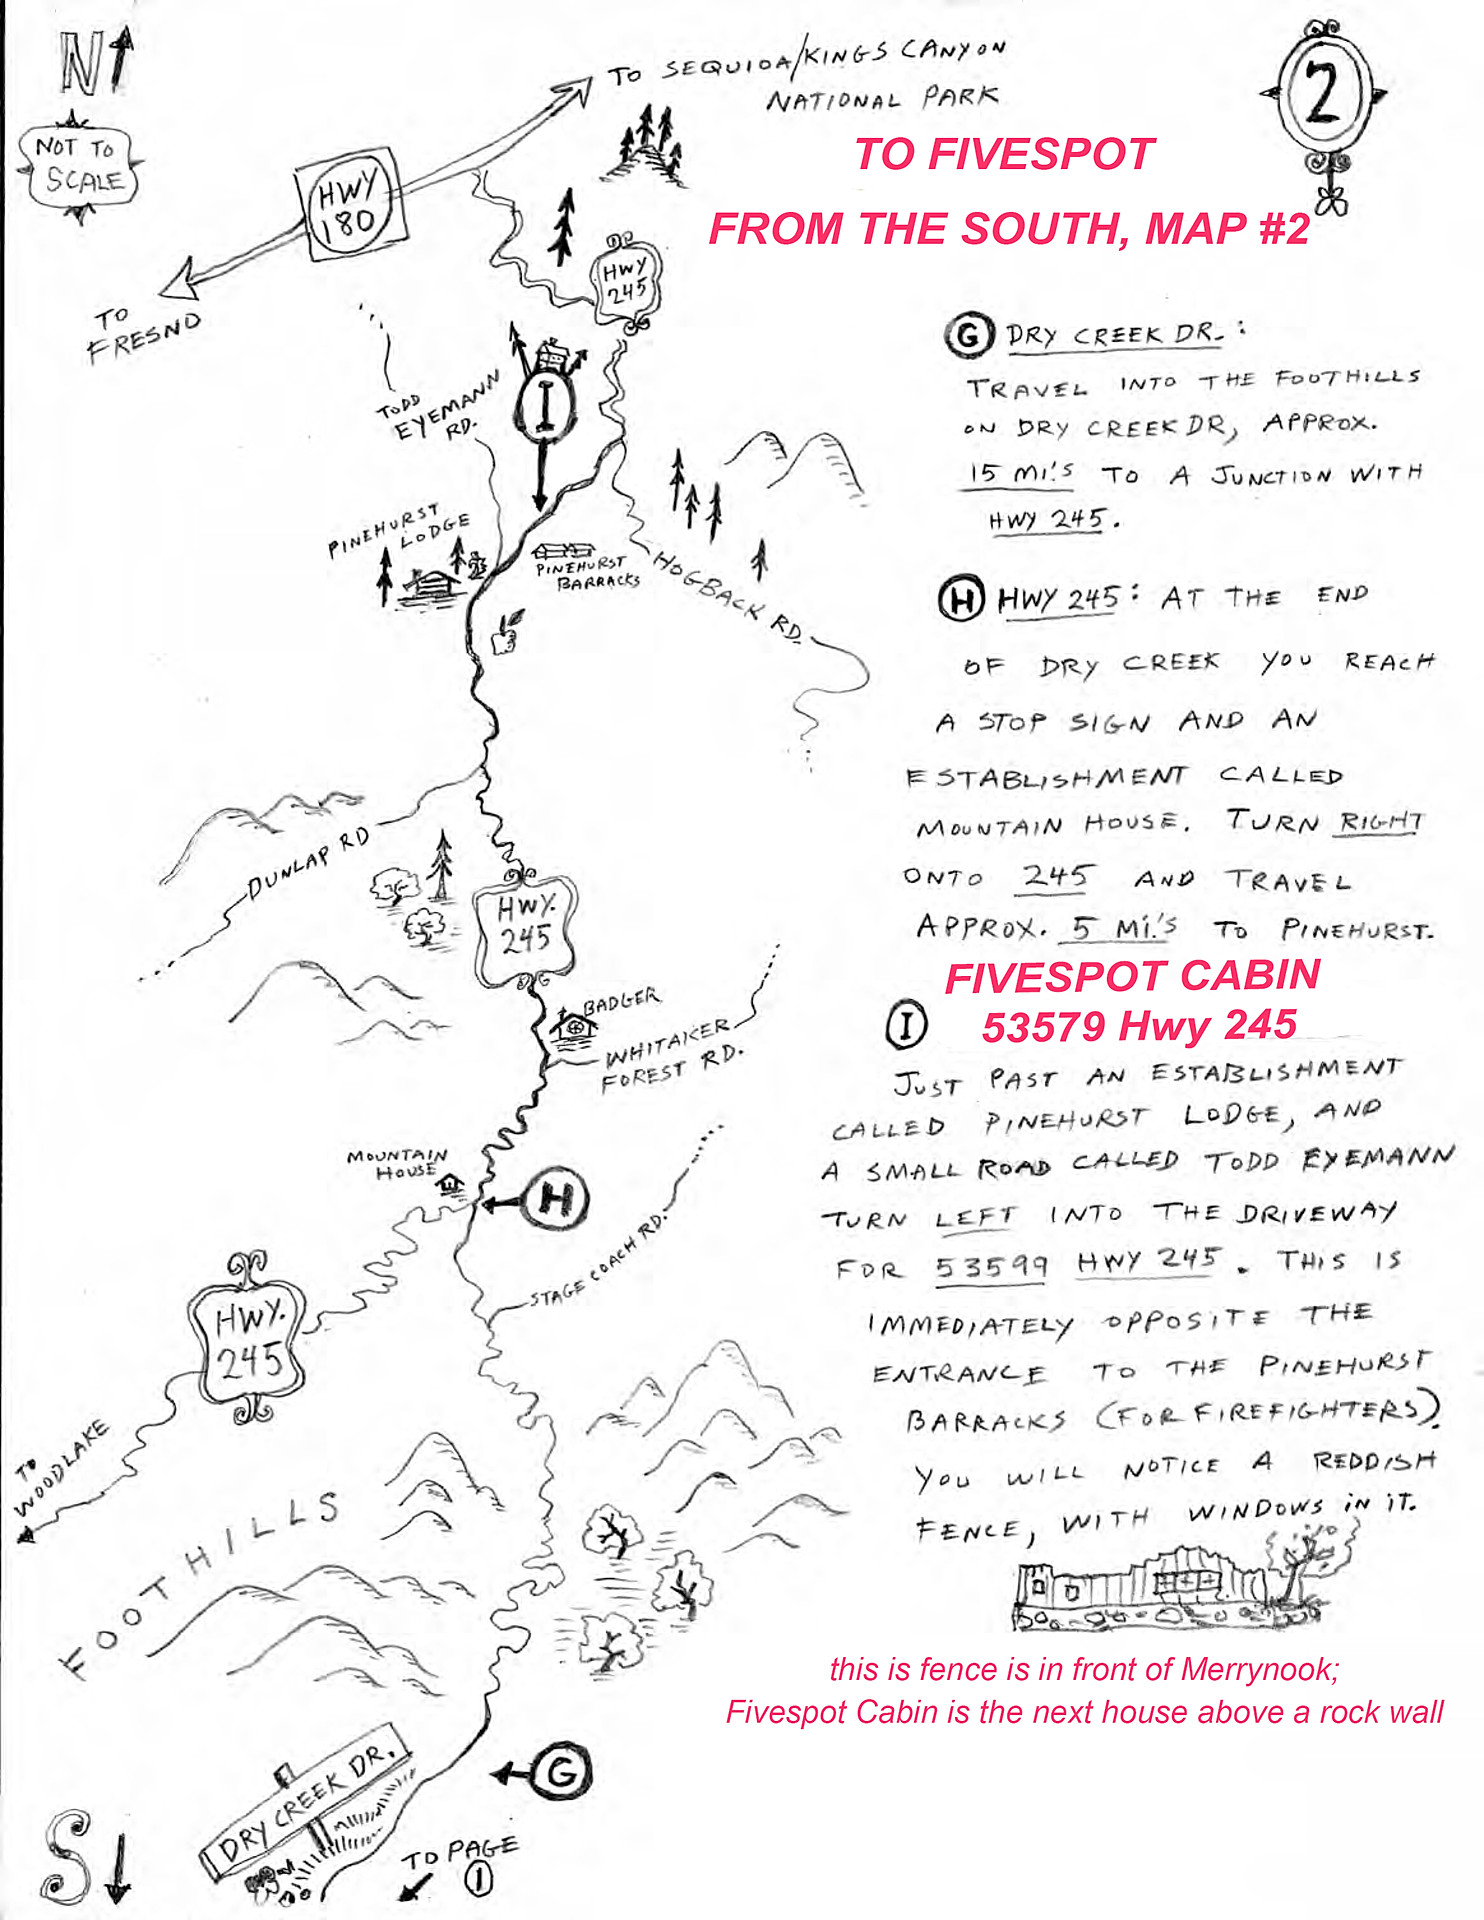 Directions to Fivespot from the South p2